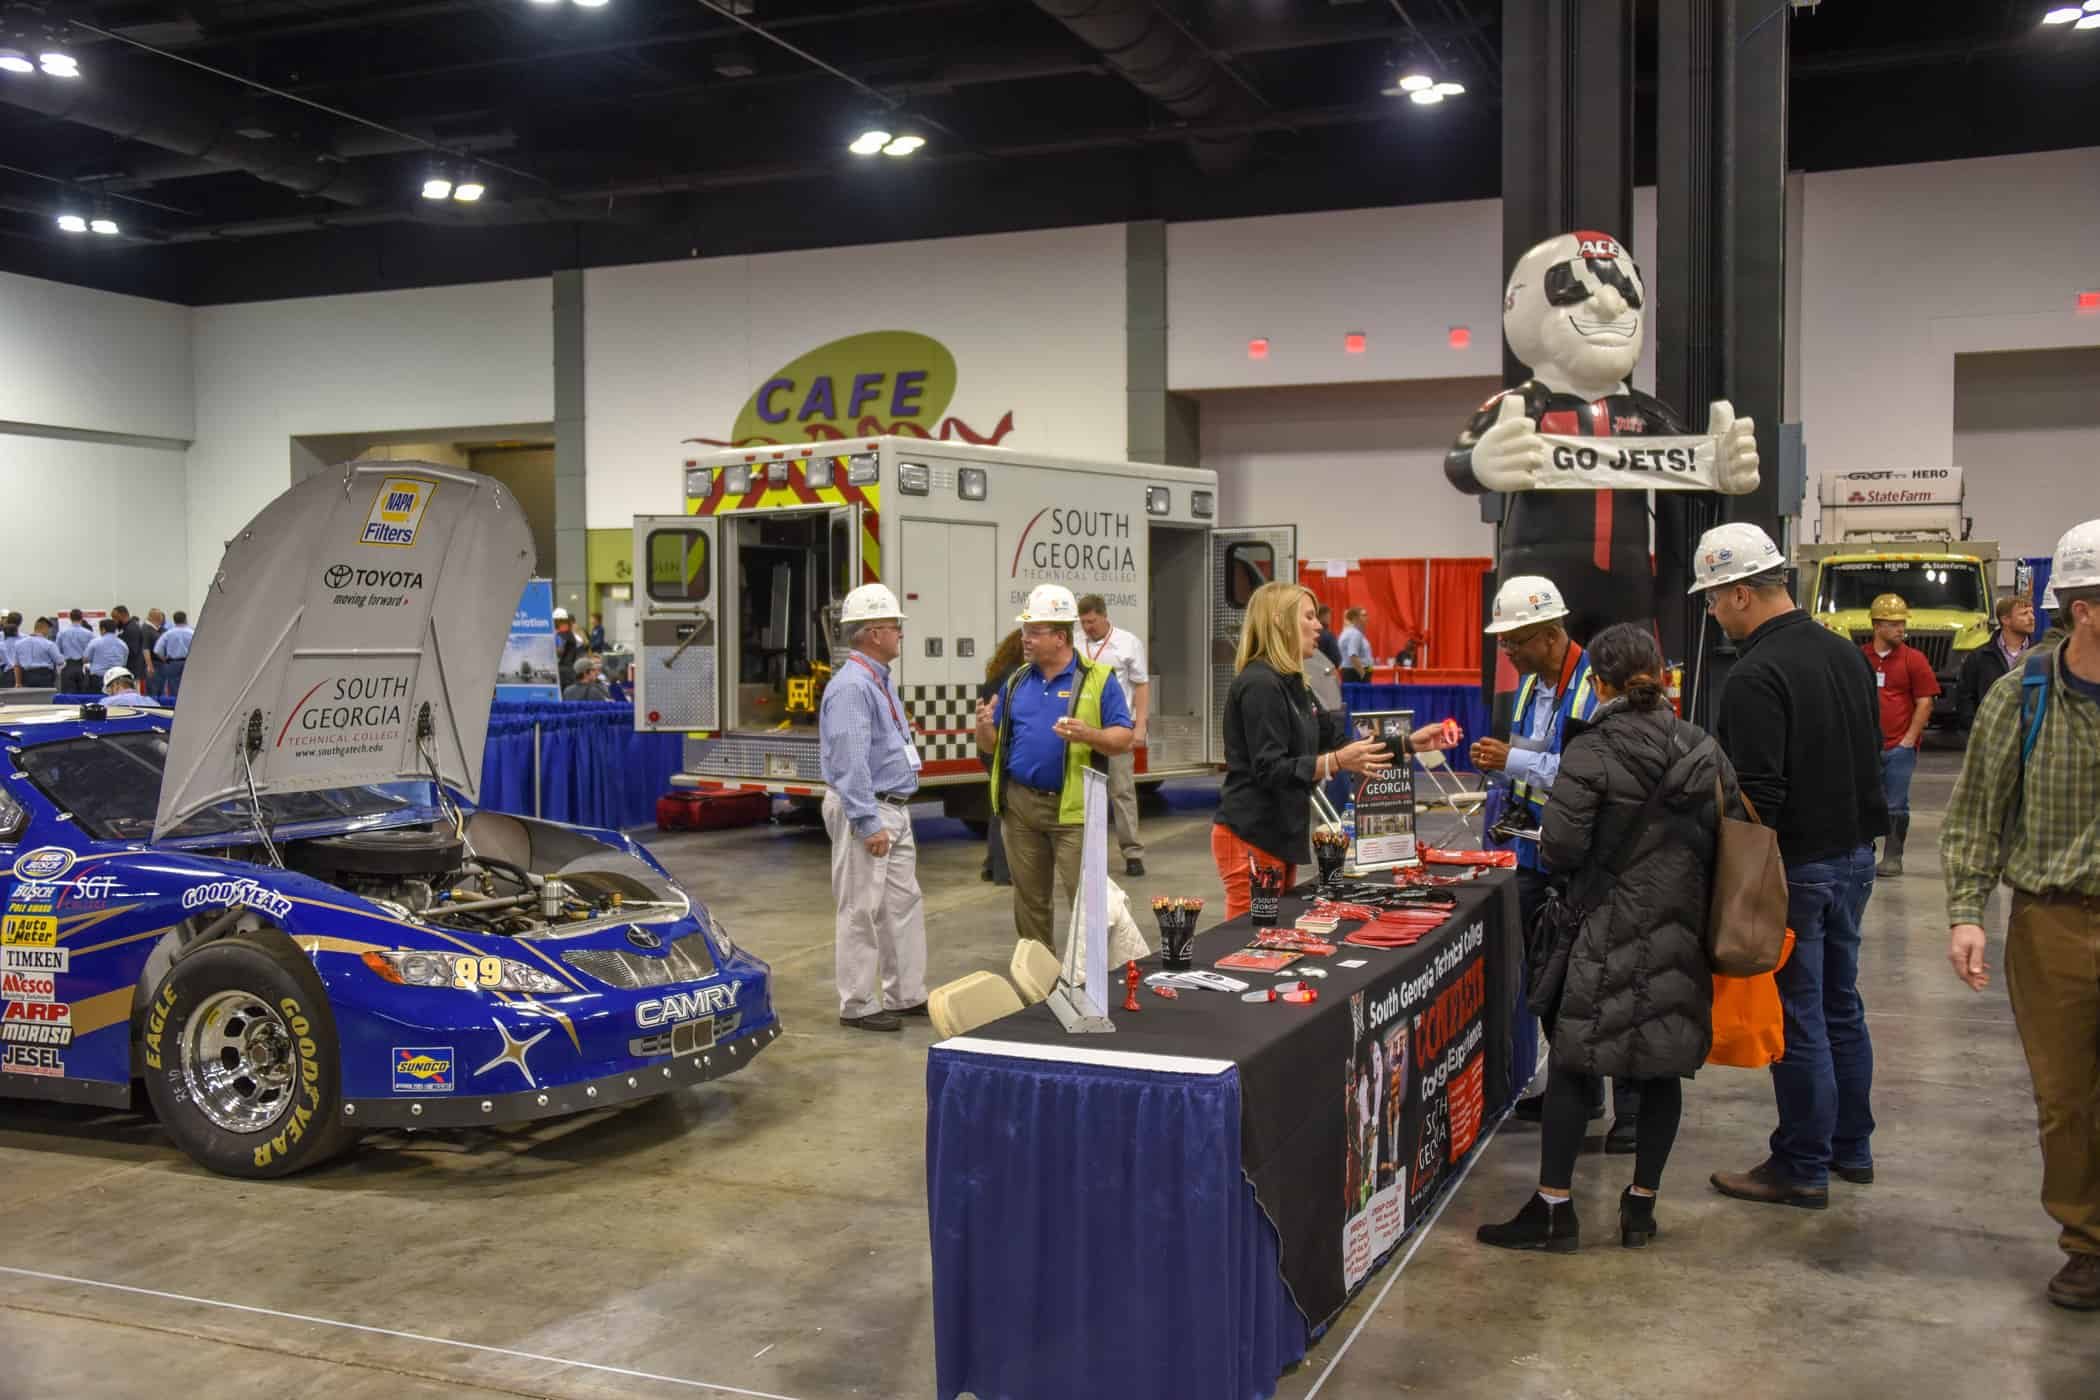 A racecar, ambulance and inflatable mascot occupy a large area within a building.